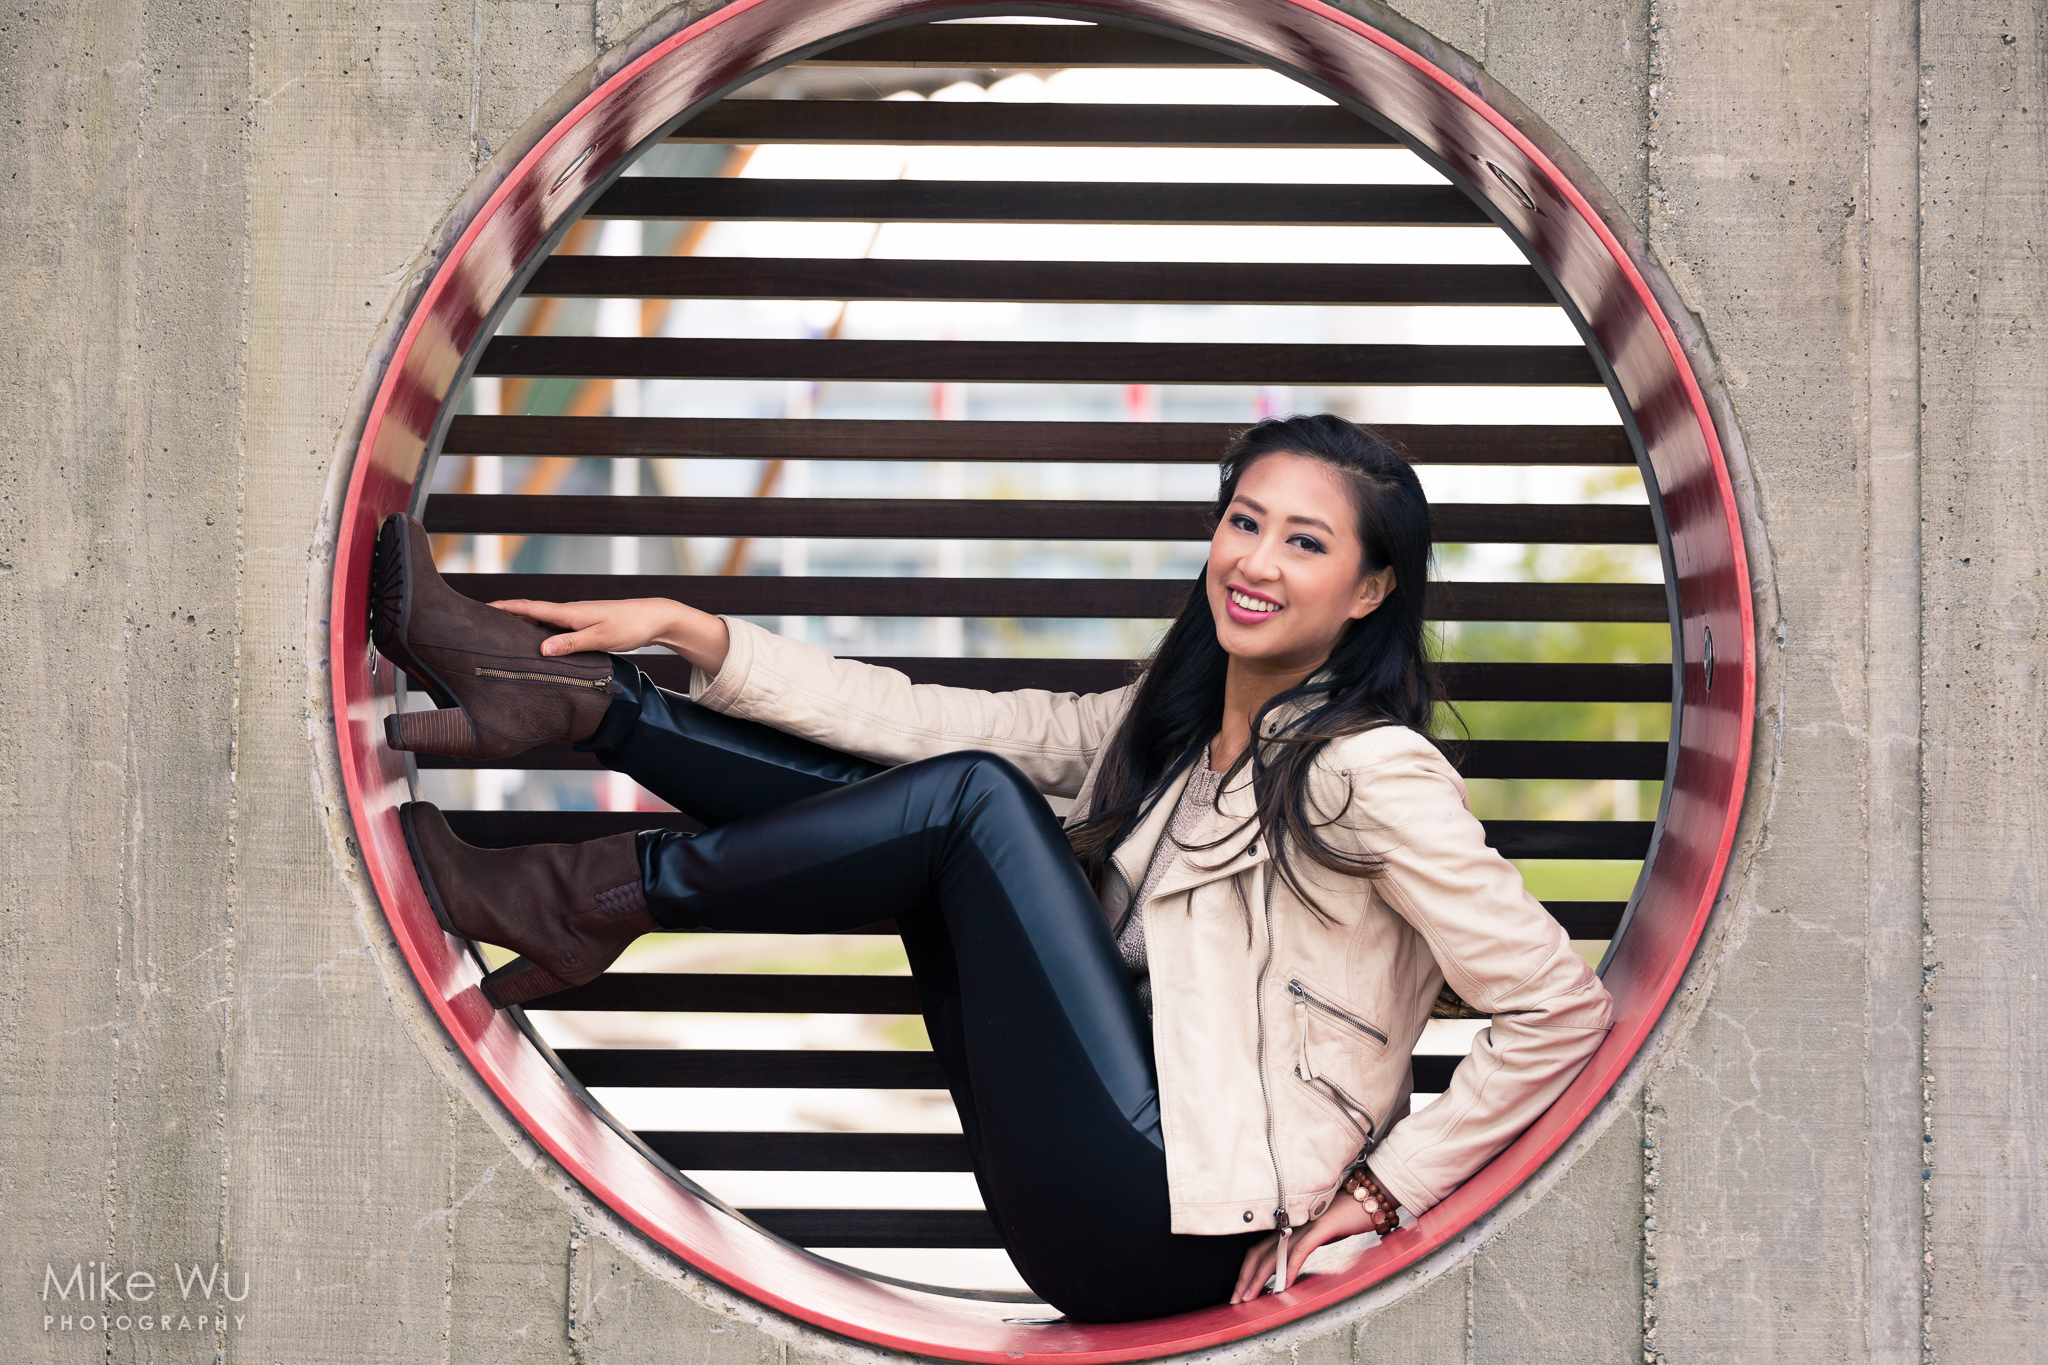 circle, fashion, vancouver, richmond, oval, smile, asian, photoshoot, portrait, fun